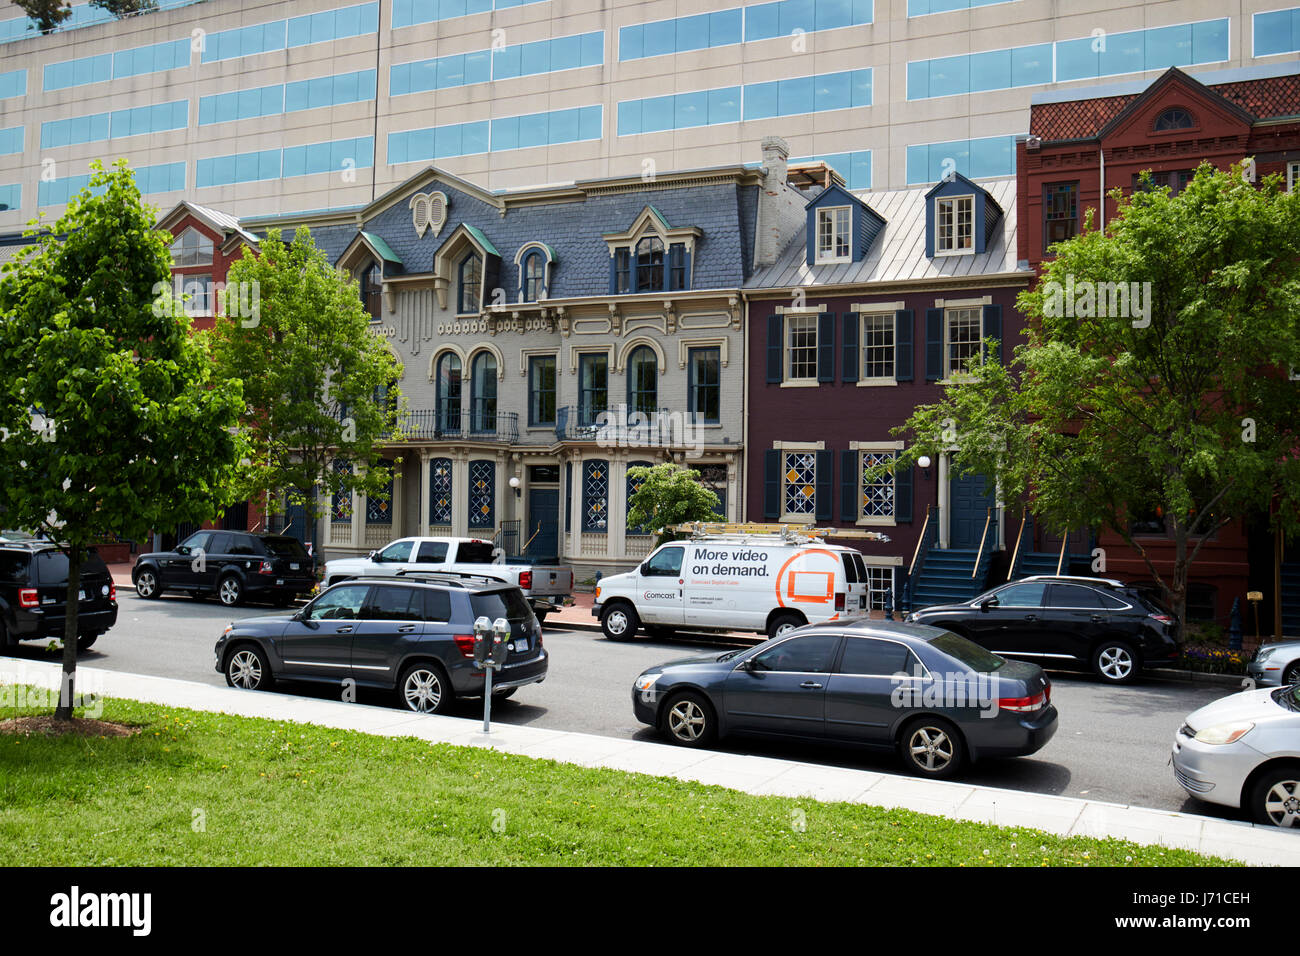 facade of historic row houses on shops at 2000 penn Washington DC USA - Stock Image